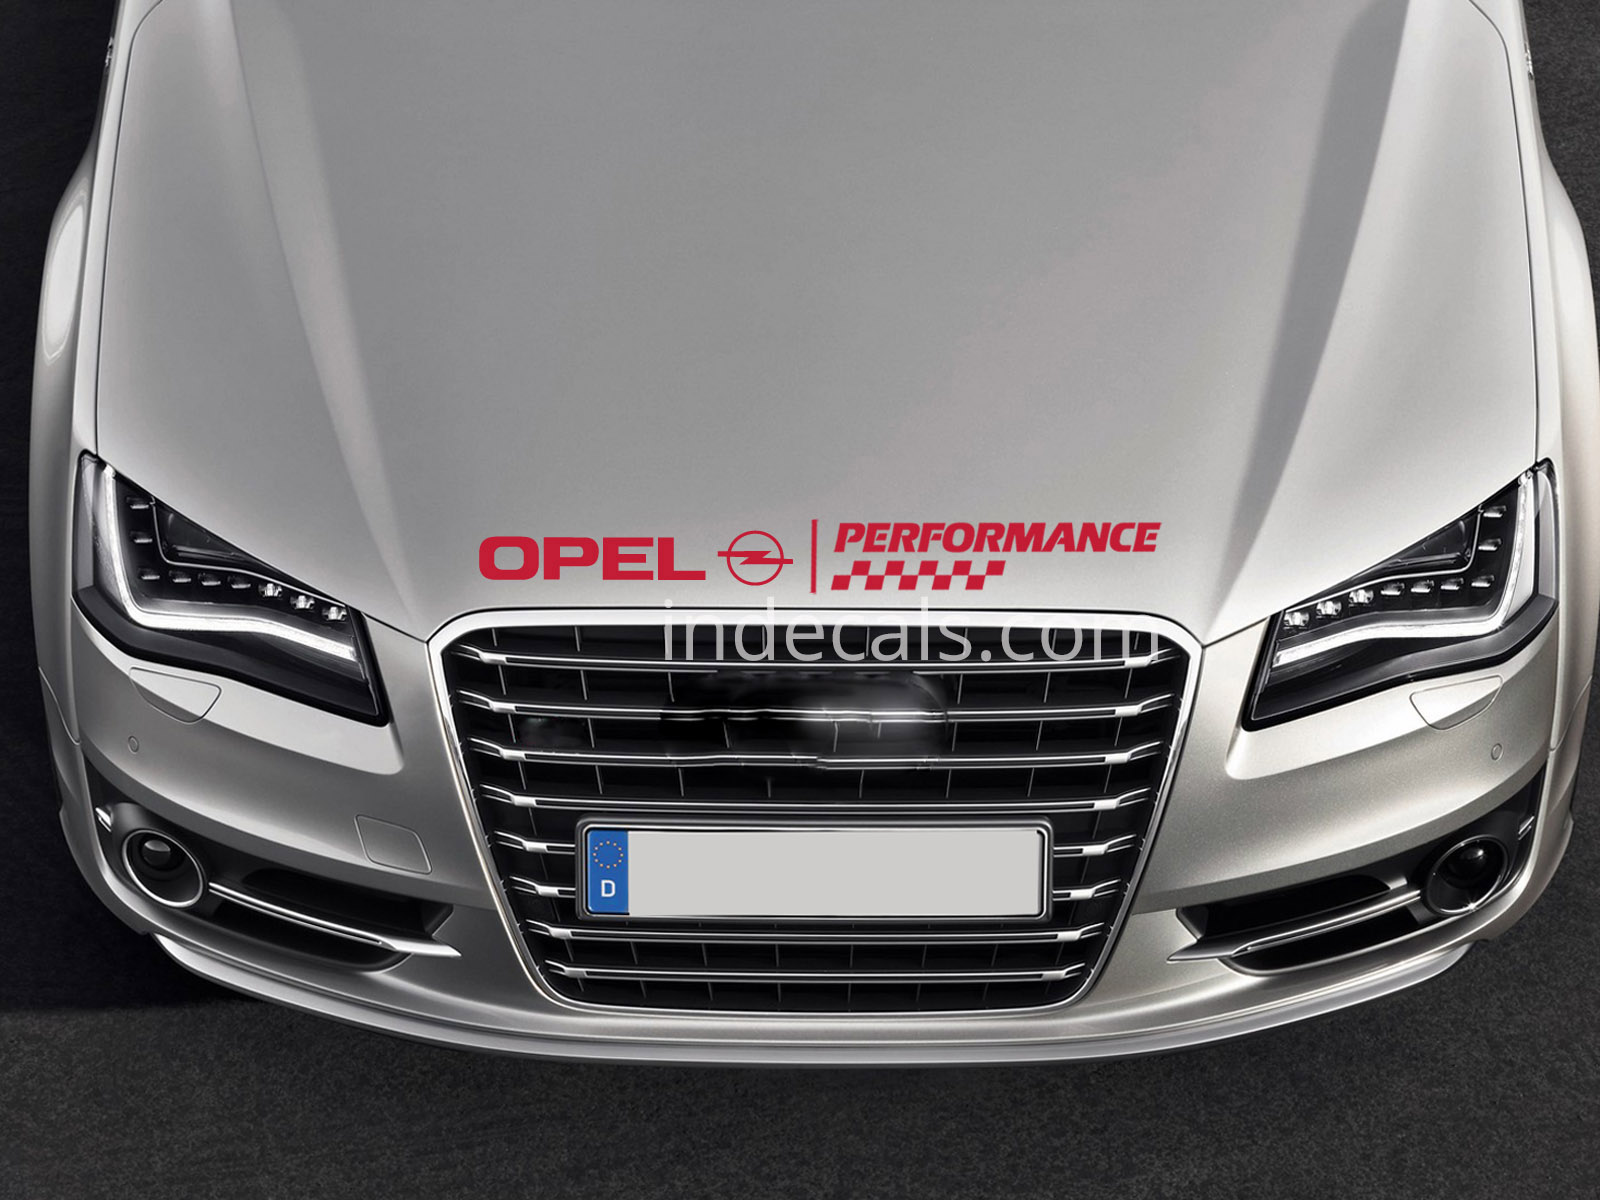 1 x Opel Performance Sticker for Bonnet - Red